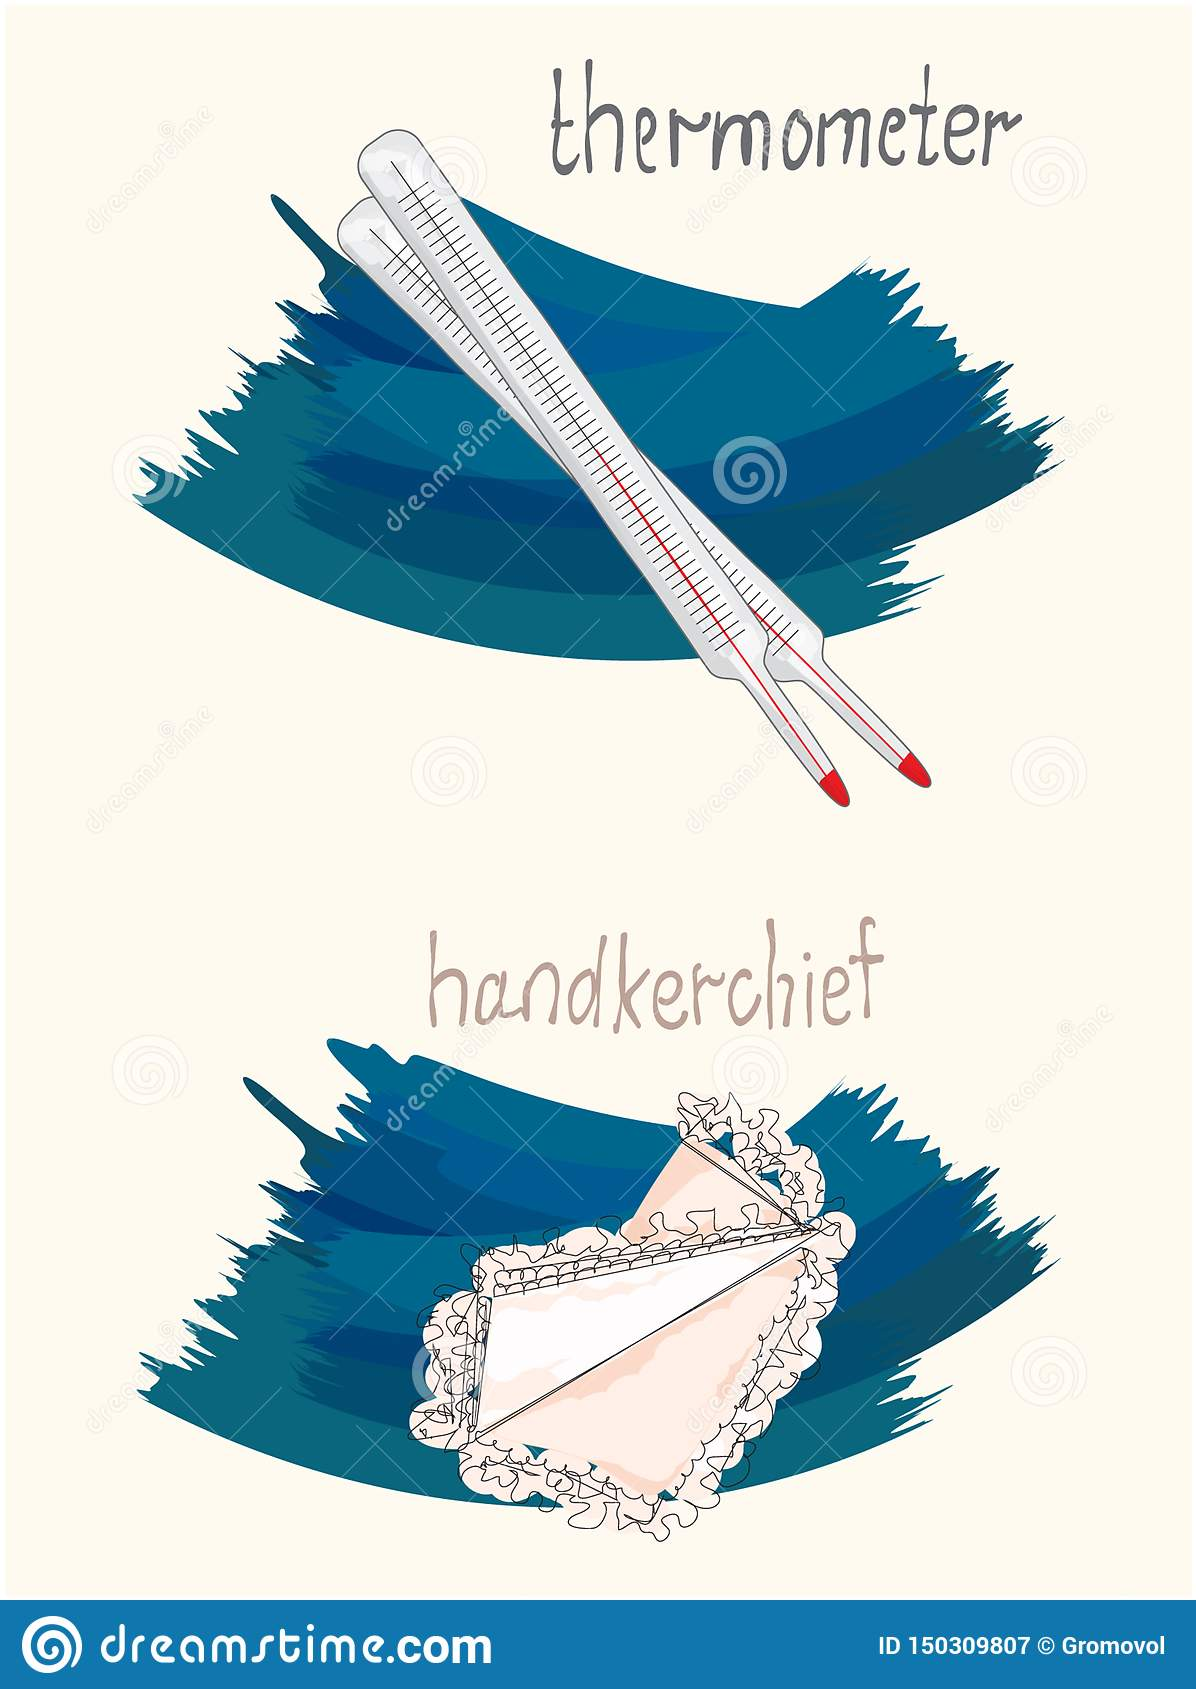 Vector illustration of handkerchief and thermometer